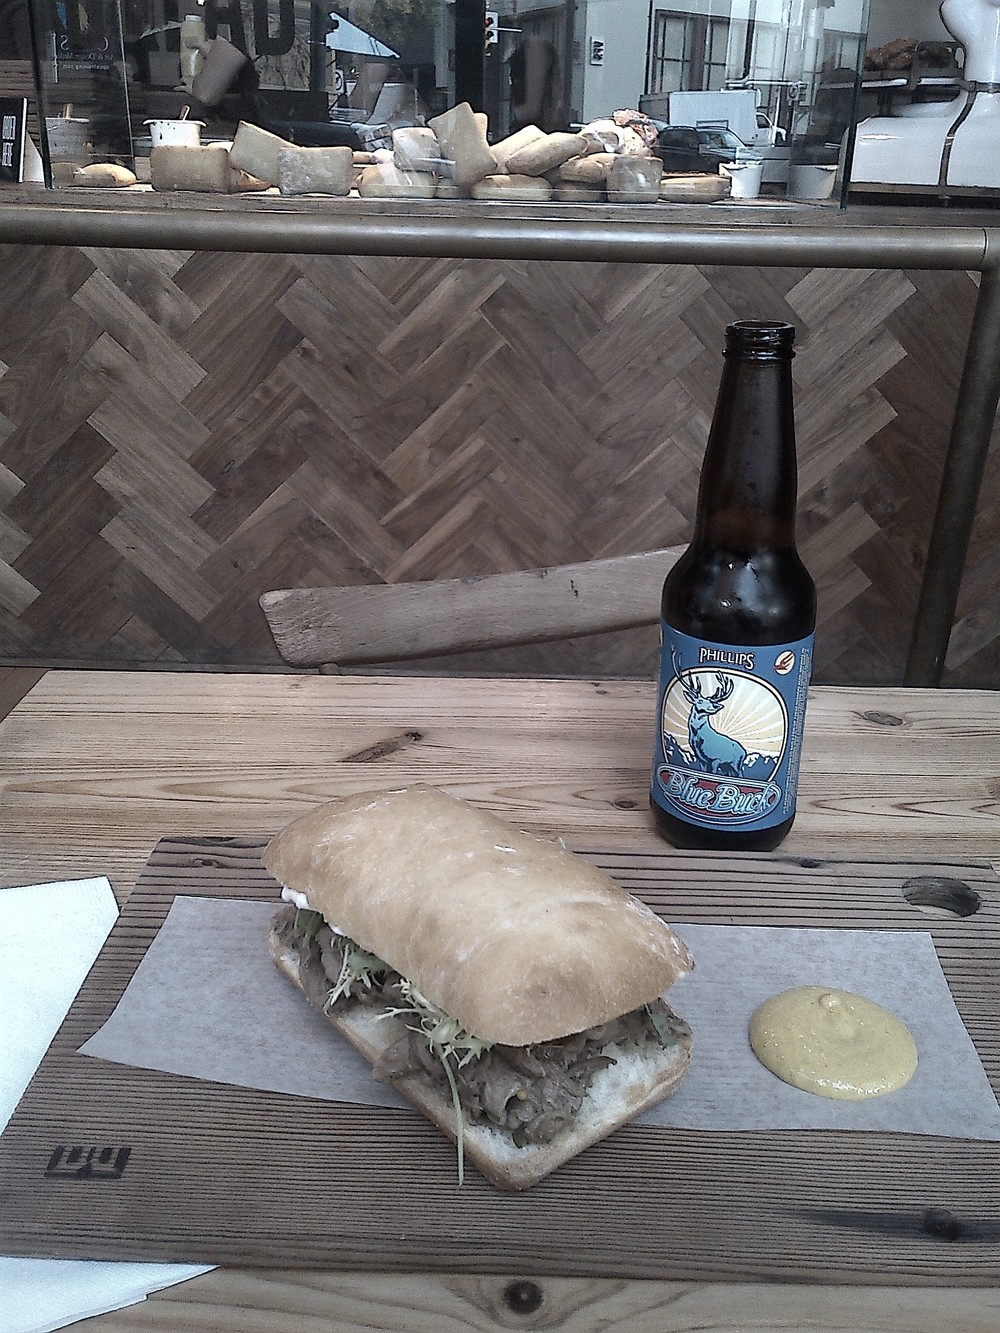 Sandwich and beer at Meat and Bread